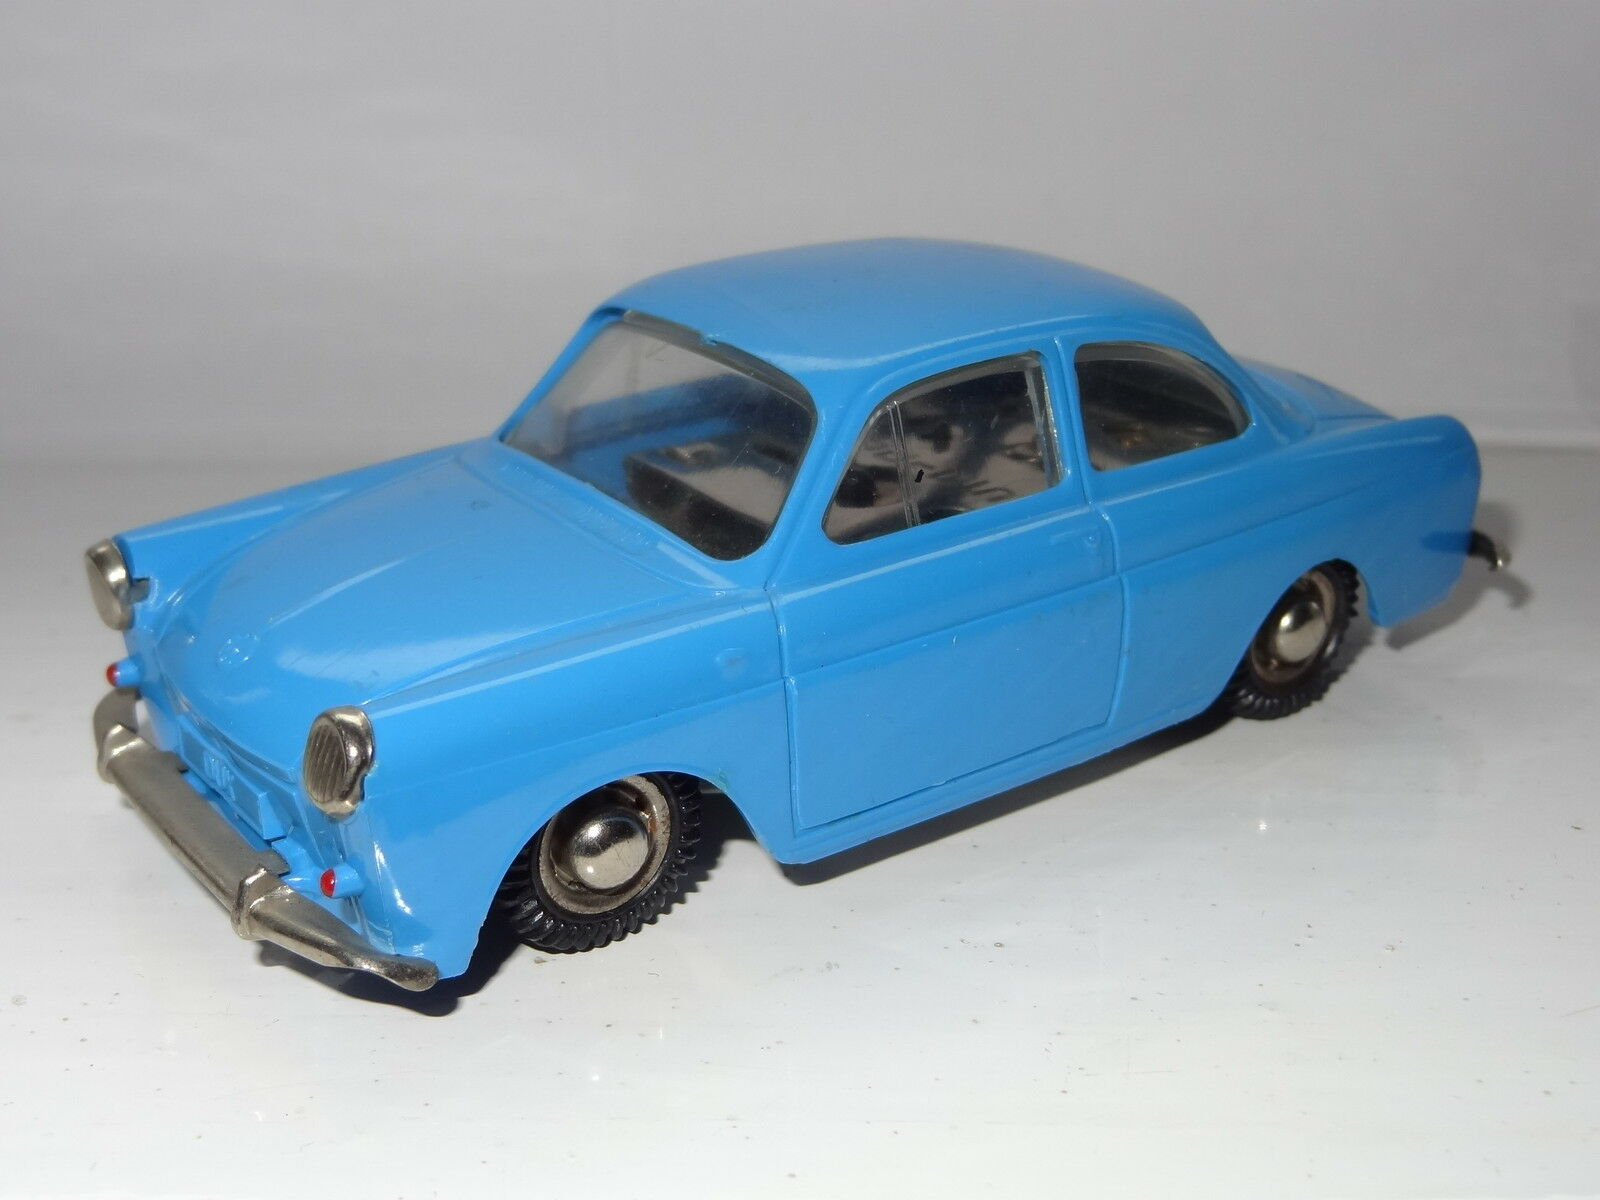 Auto Dux 612 Vw Volkswagen 1500 Wind Up Toy Toy Toy C   adelante & Reversa Alemania ab9cd2